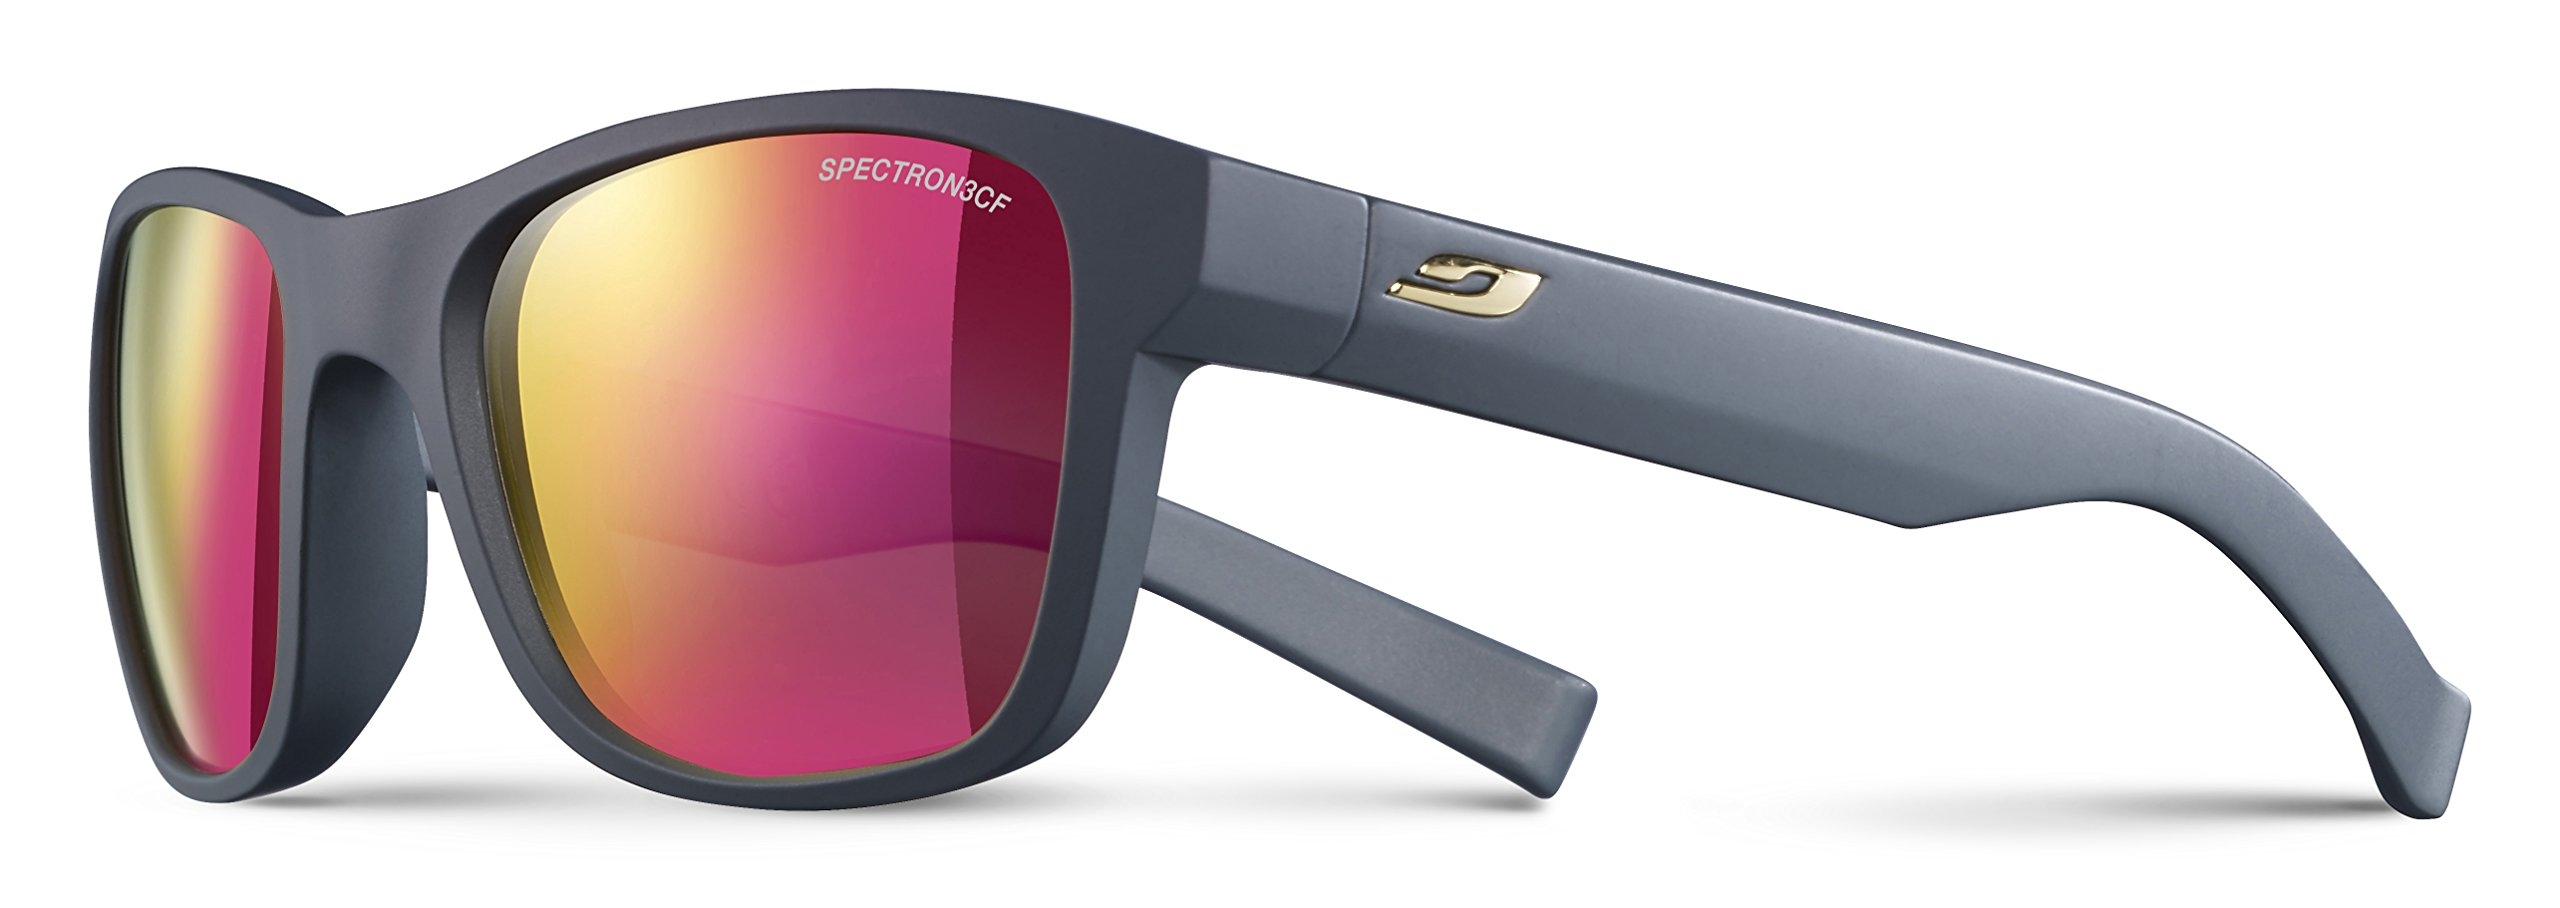 Julbo Reach L Sunglasses: Gray with Spectron 3CF Lenses 10-15 Years